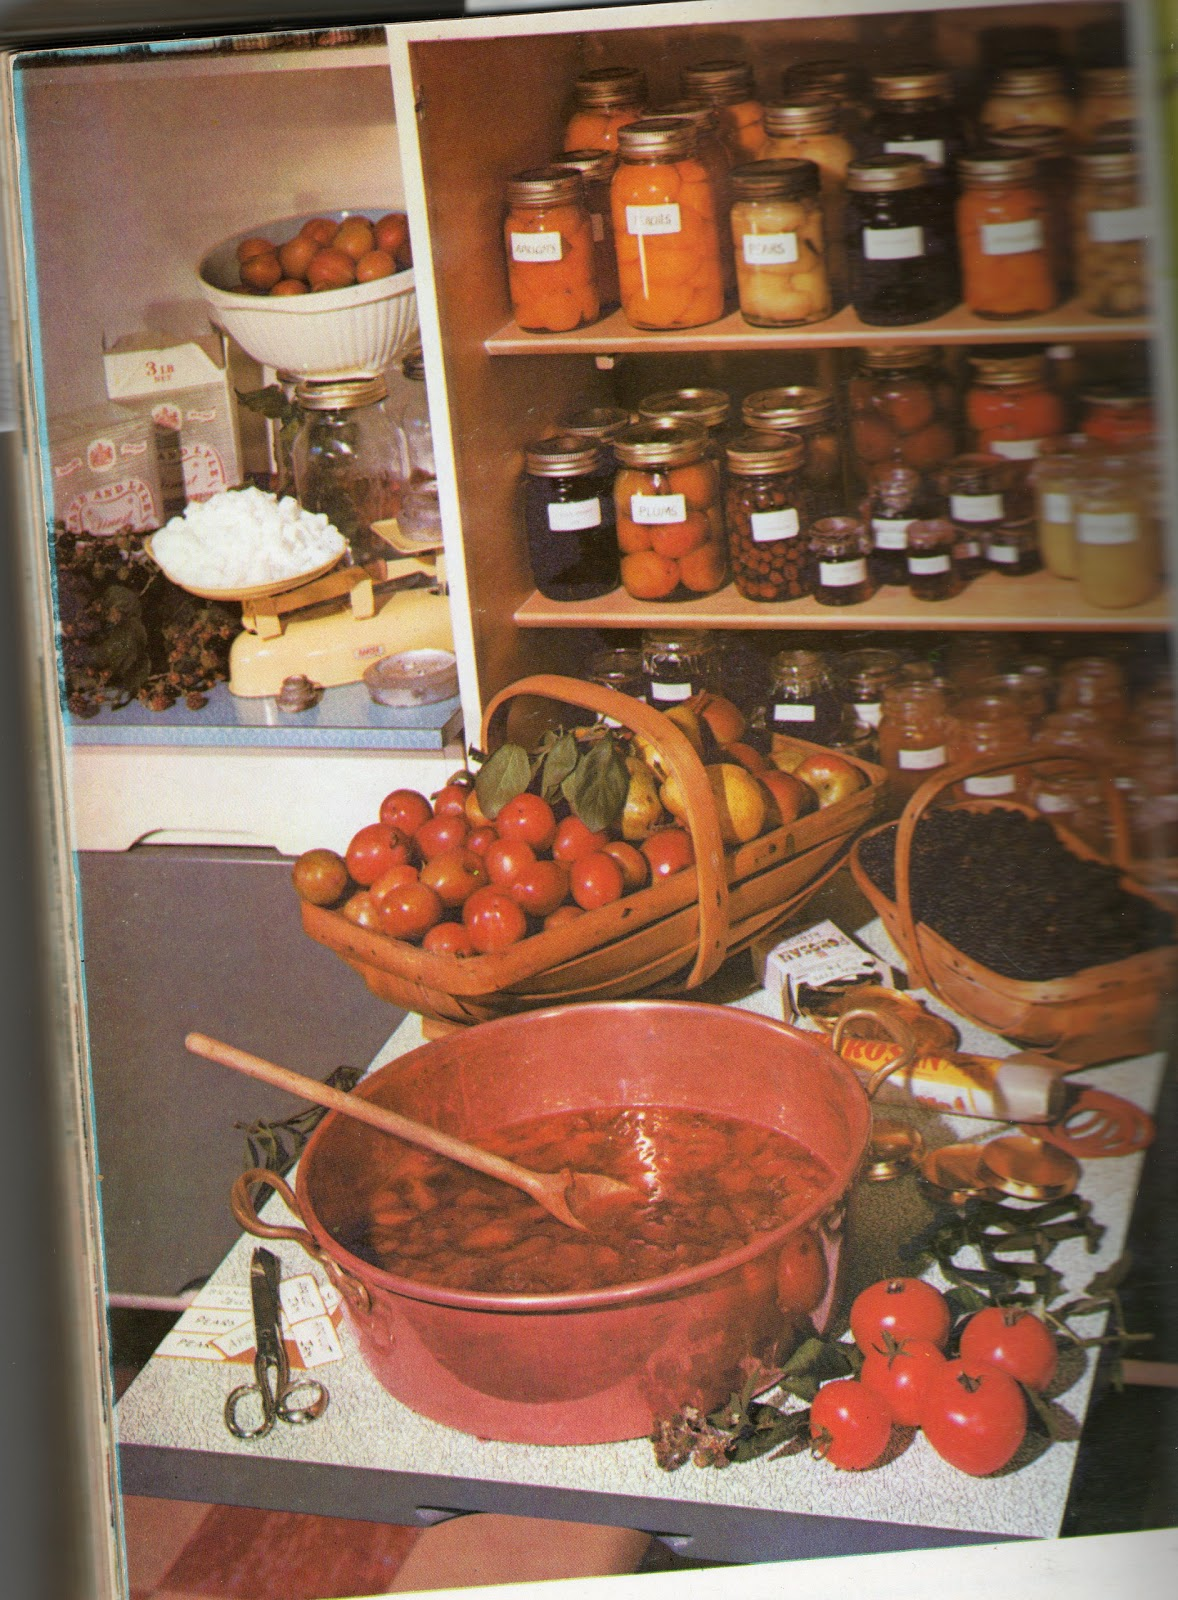 retro food cupboard larder recipes pans jams preserving foods jars